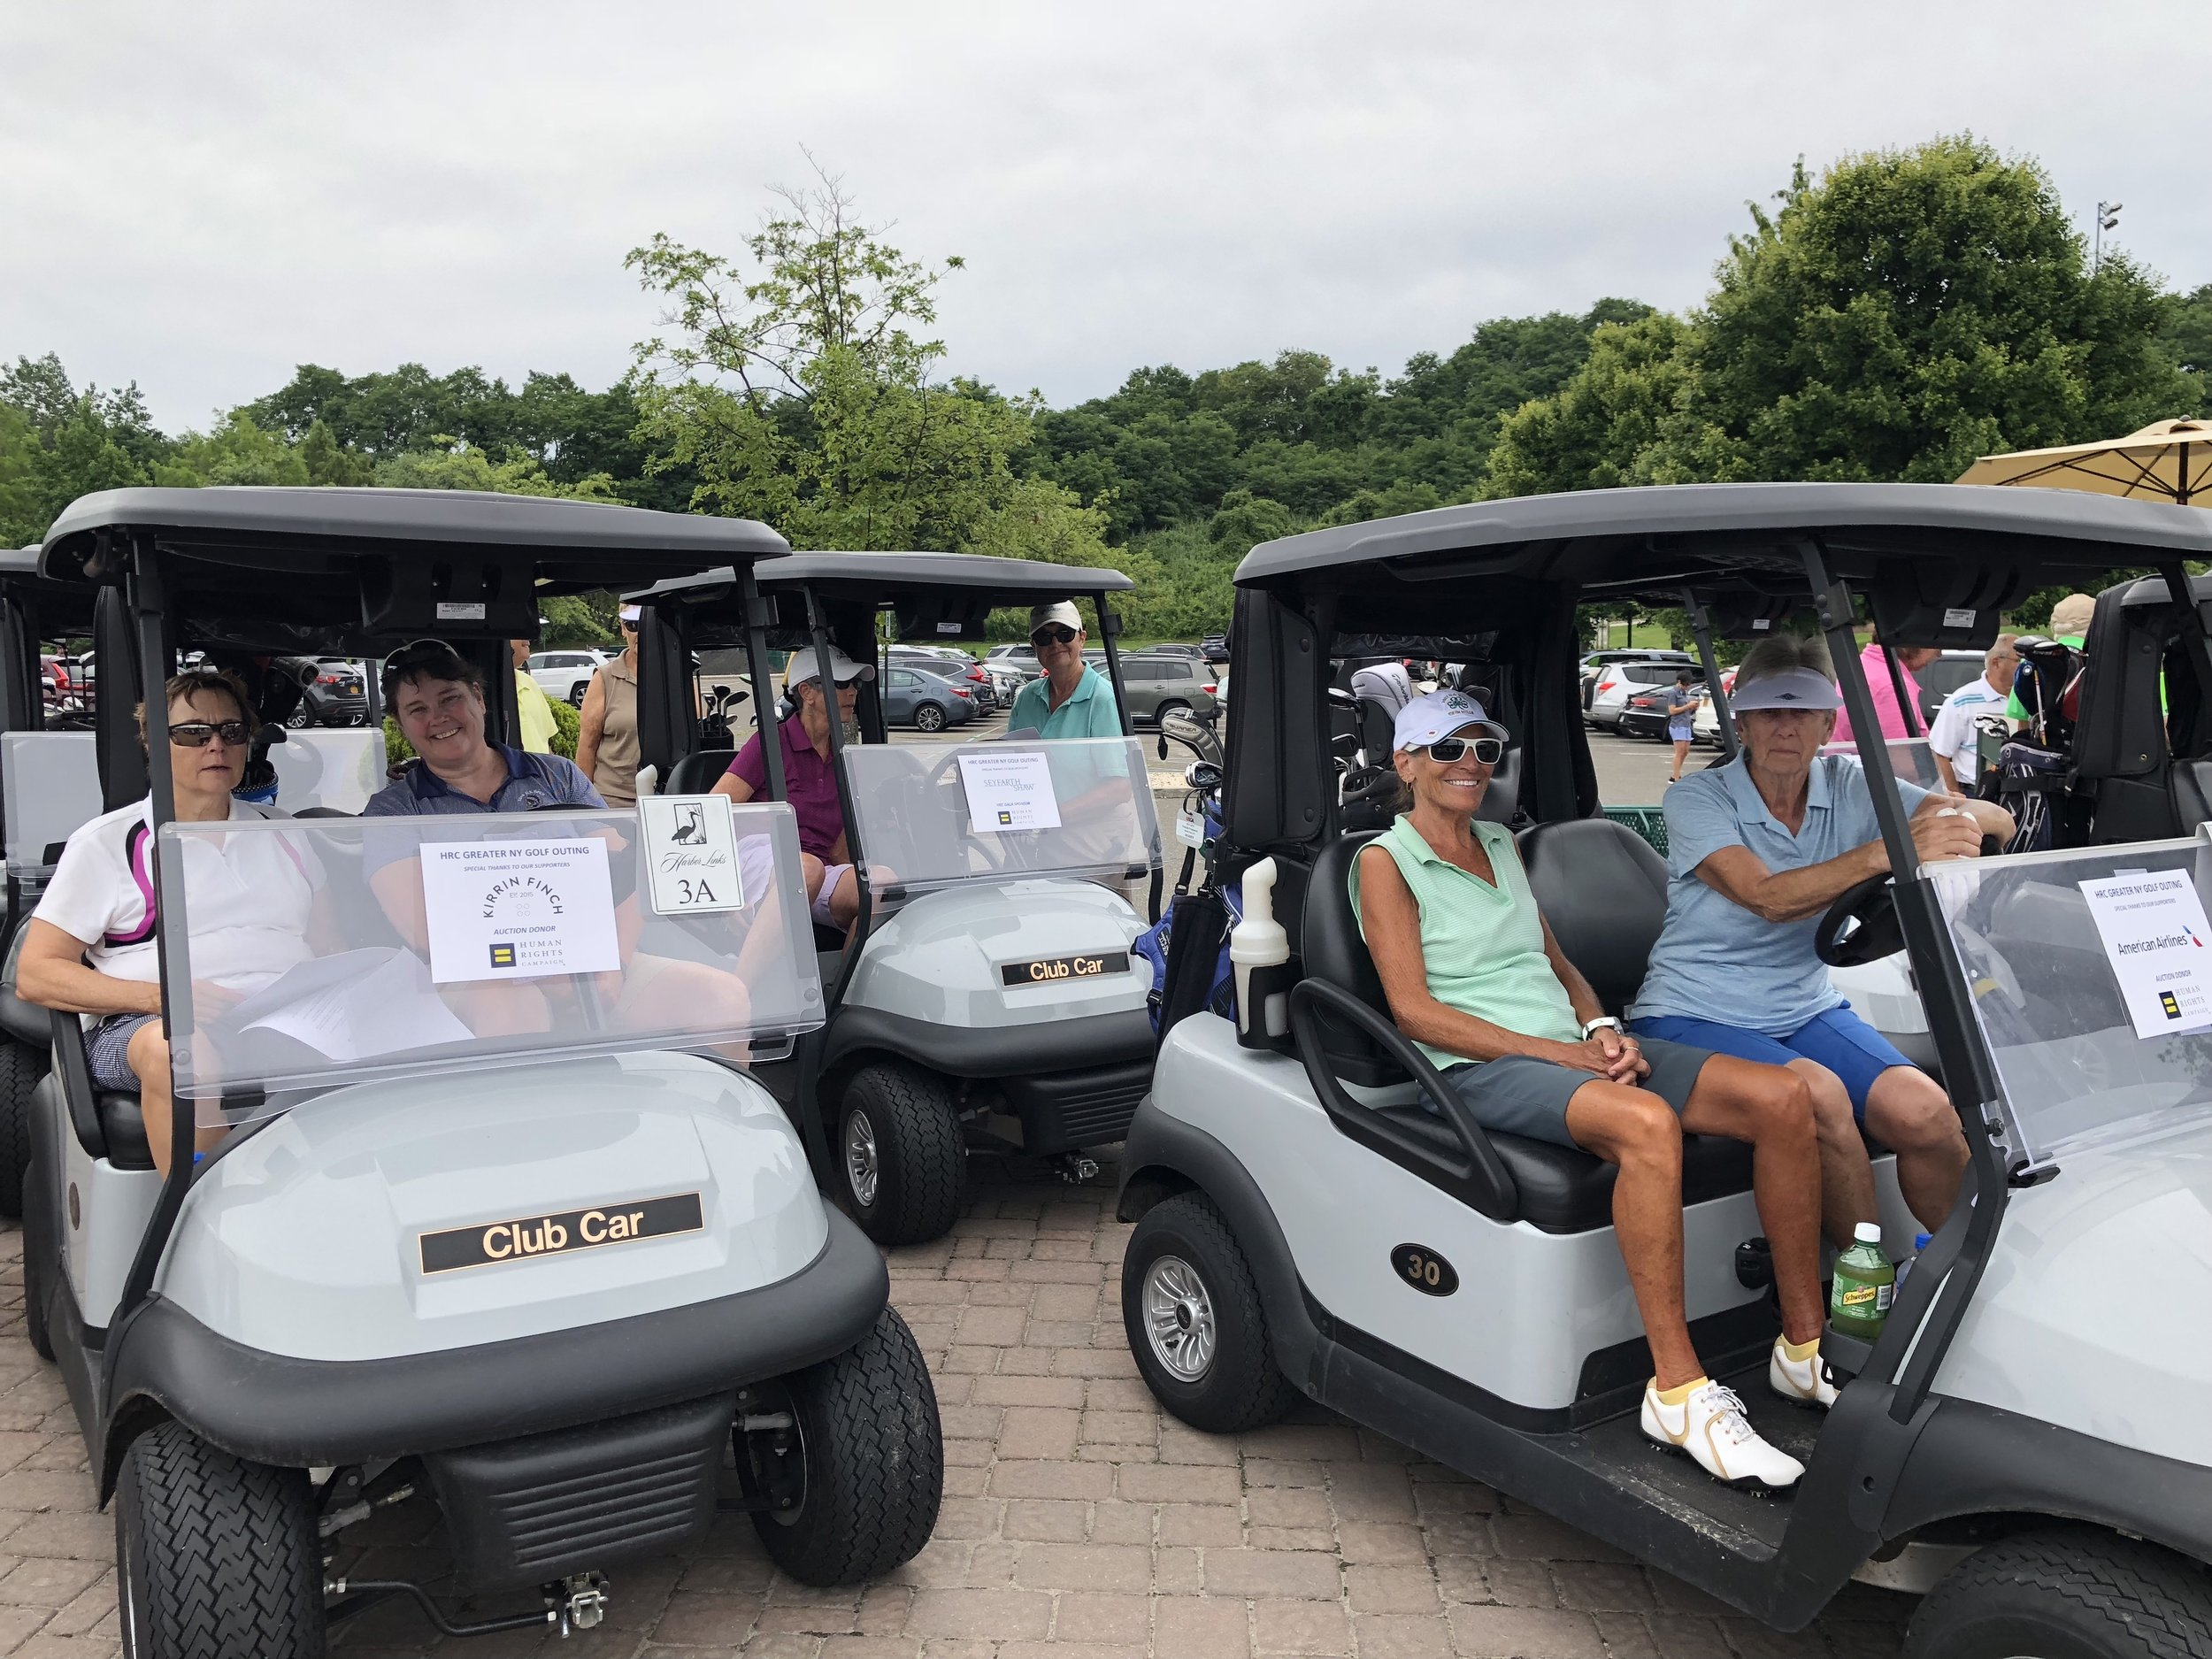 Golf Outing Carts Grouping.jpg